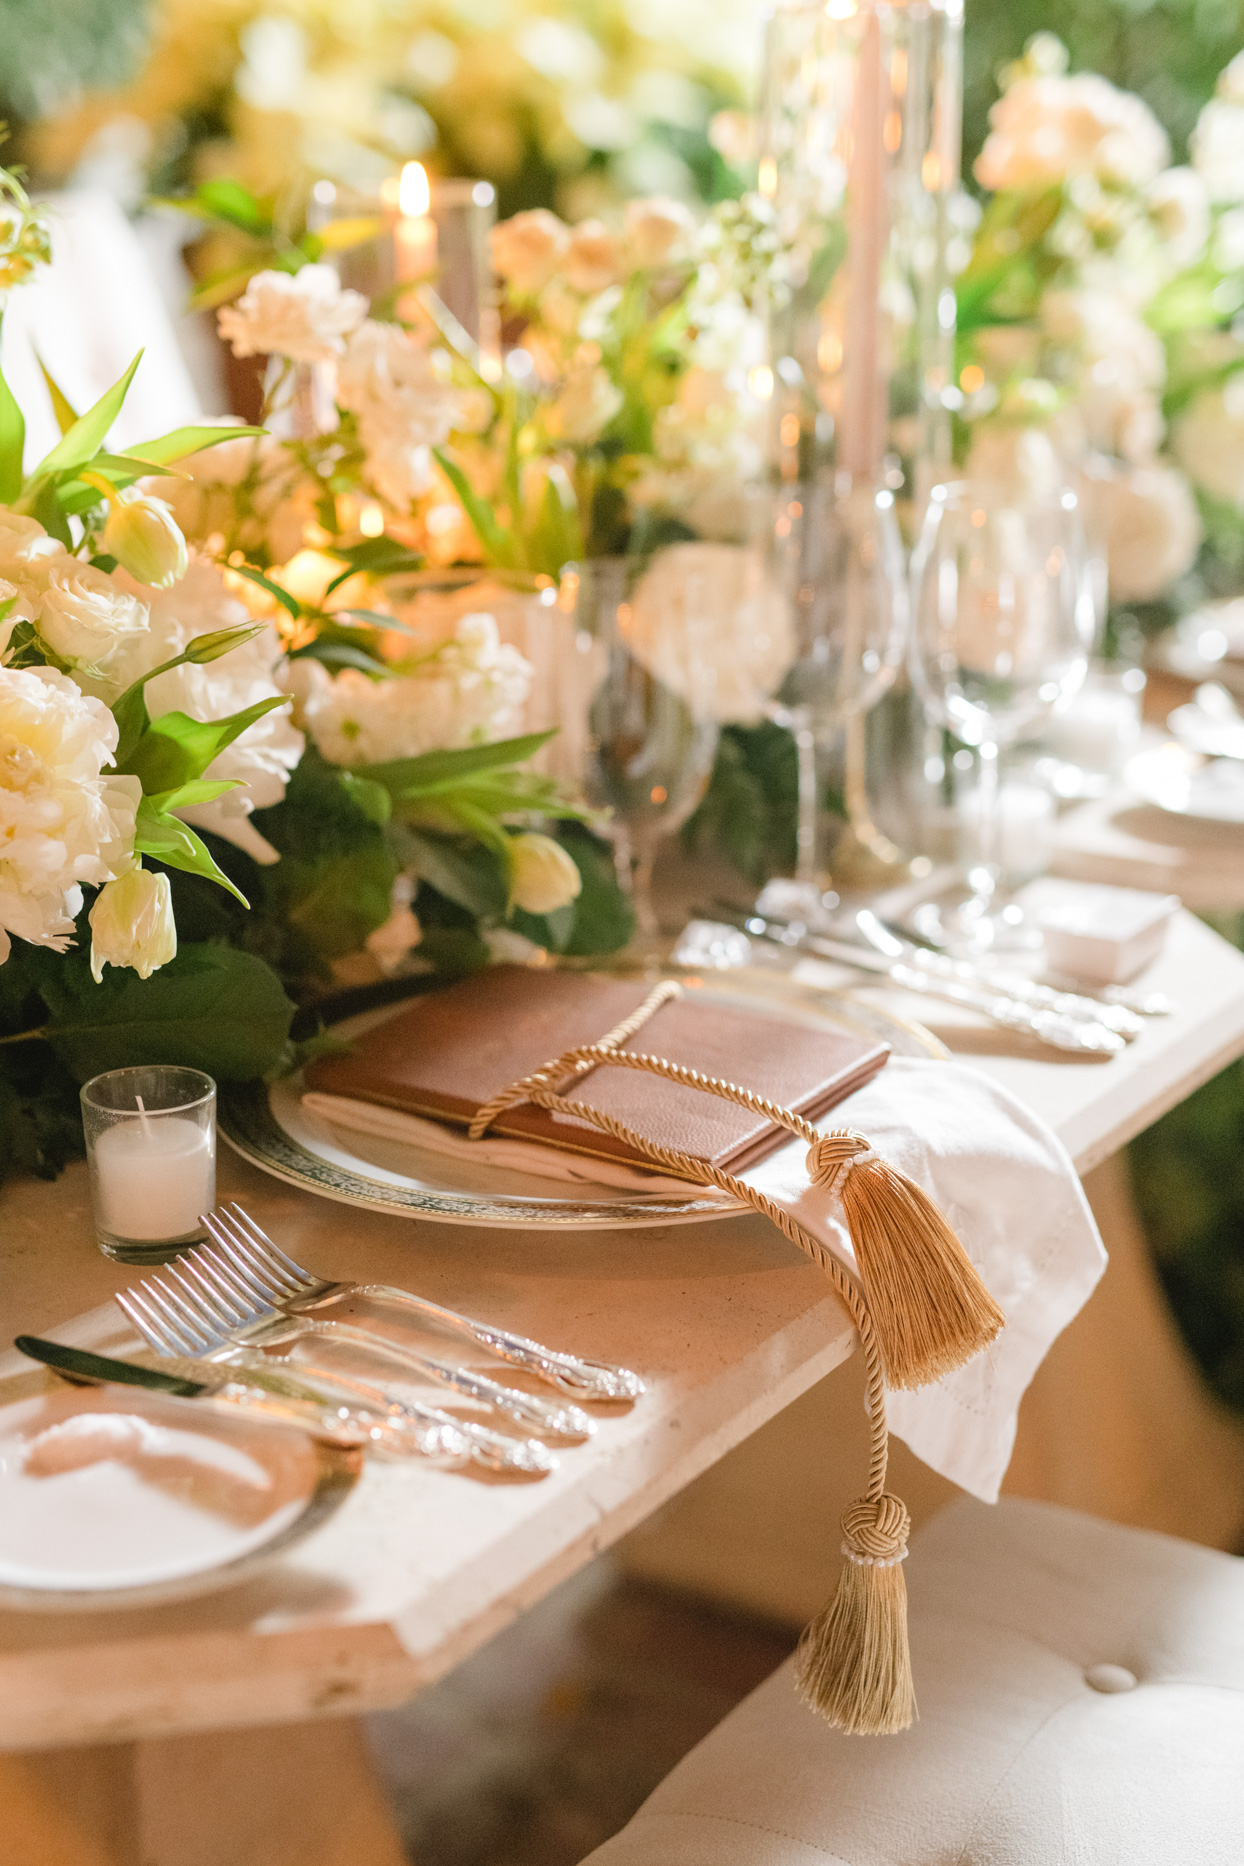 elegant reception place setting with tassels on napkins